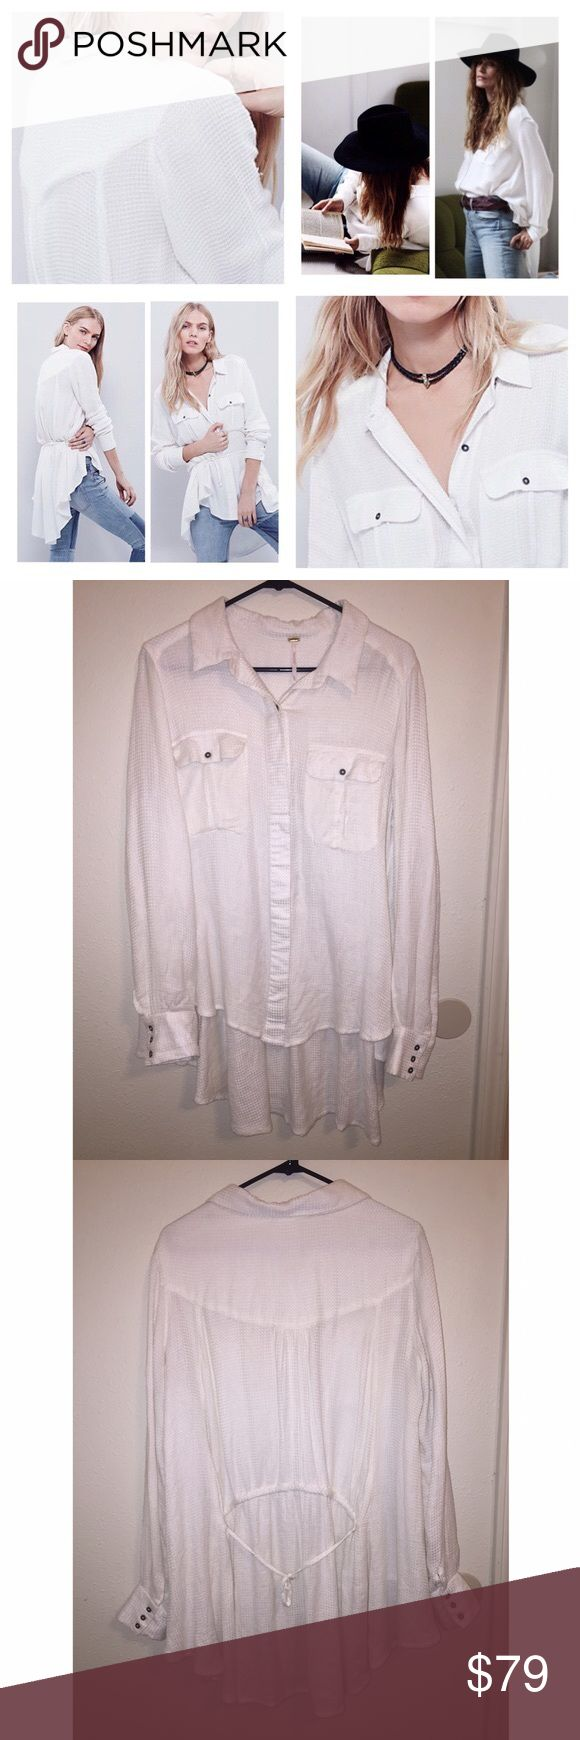 NWOT Free People 'One of the Guys' Button Down Easy and effortless, this oversized buttondown features two bust pockets and hidden button closures. High low hem with an adjustable tie in back. Easy to dress up or down, looks so flattering on! Worn once for 2 hours, new condition, smoke free home. 🚨 SOLD OUT ON FREEPEOPLE.COM! 🚨  100% Rayon Hand Wash Cold Import Free People Tops Button Down Shirts